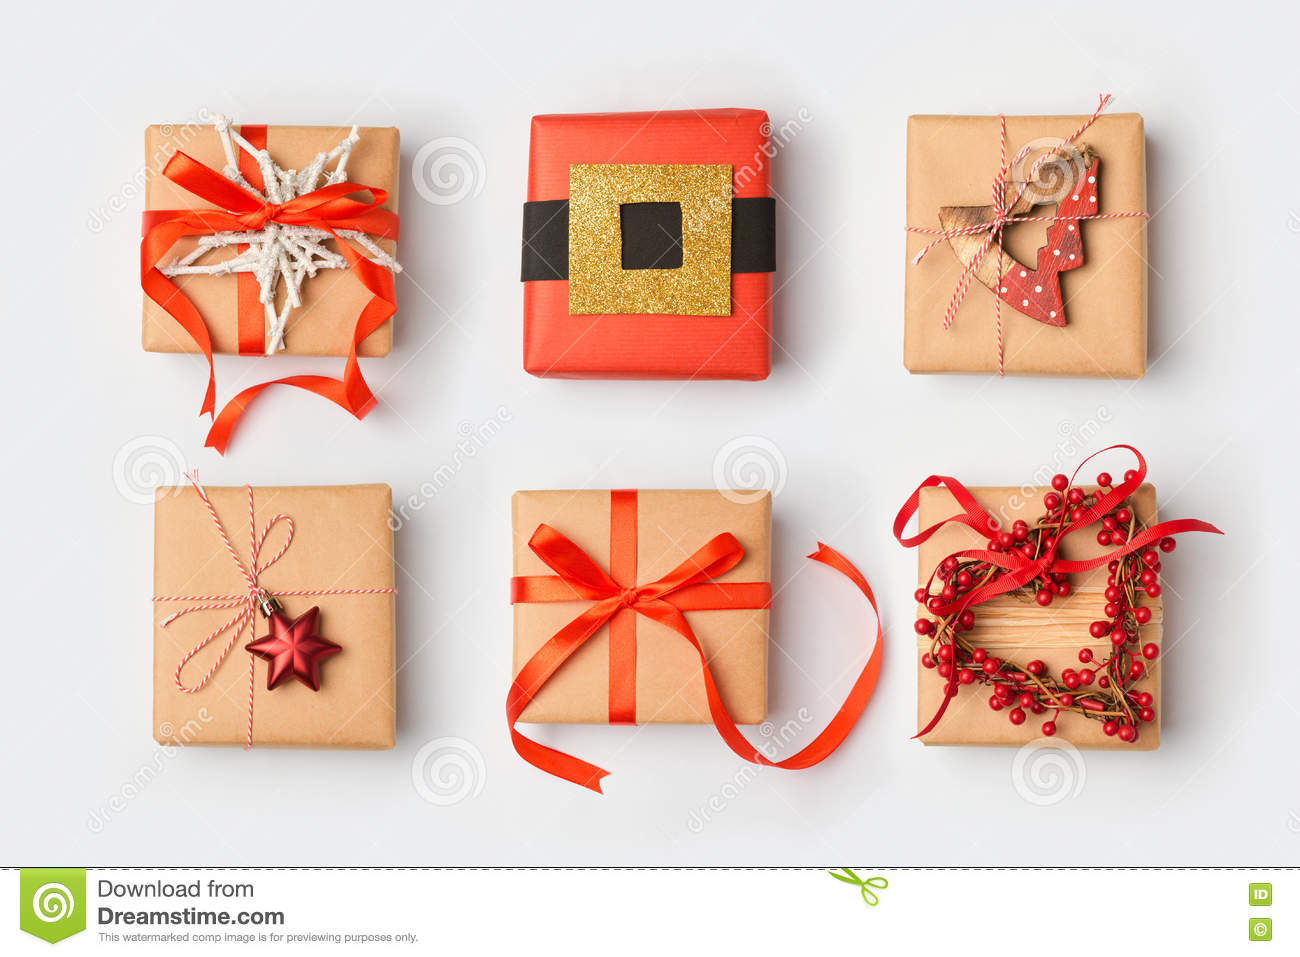 Wrapping Presents Christmas Gift Boxes With Homemade Creative Wrapping View